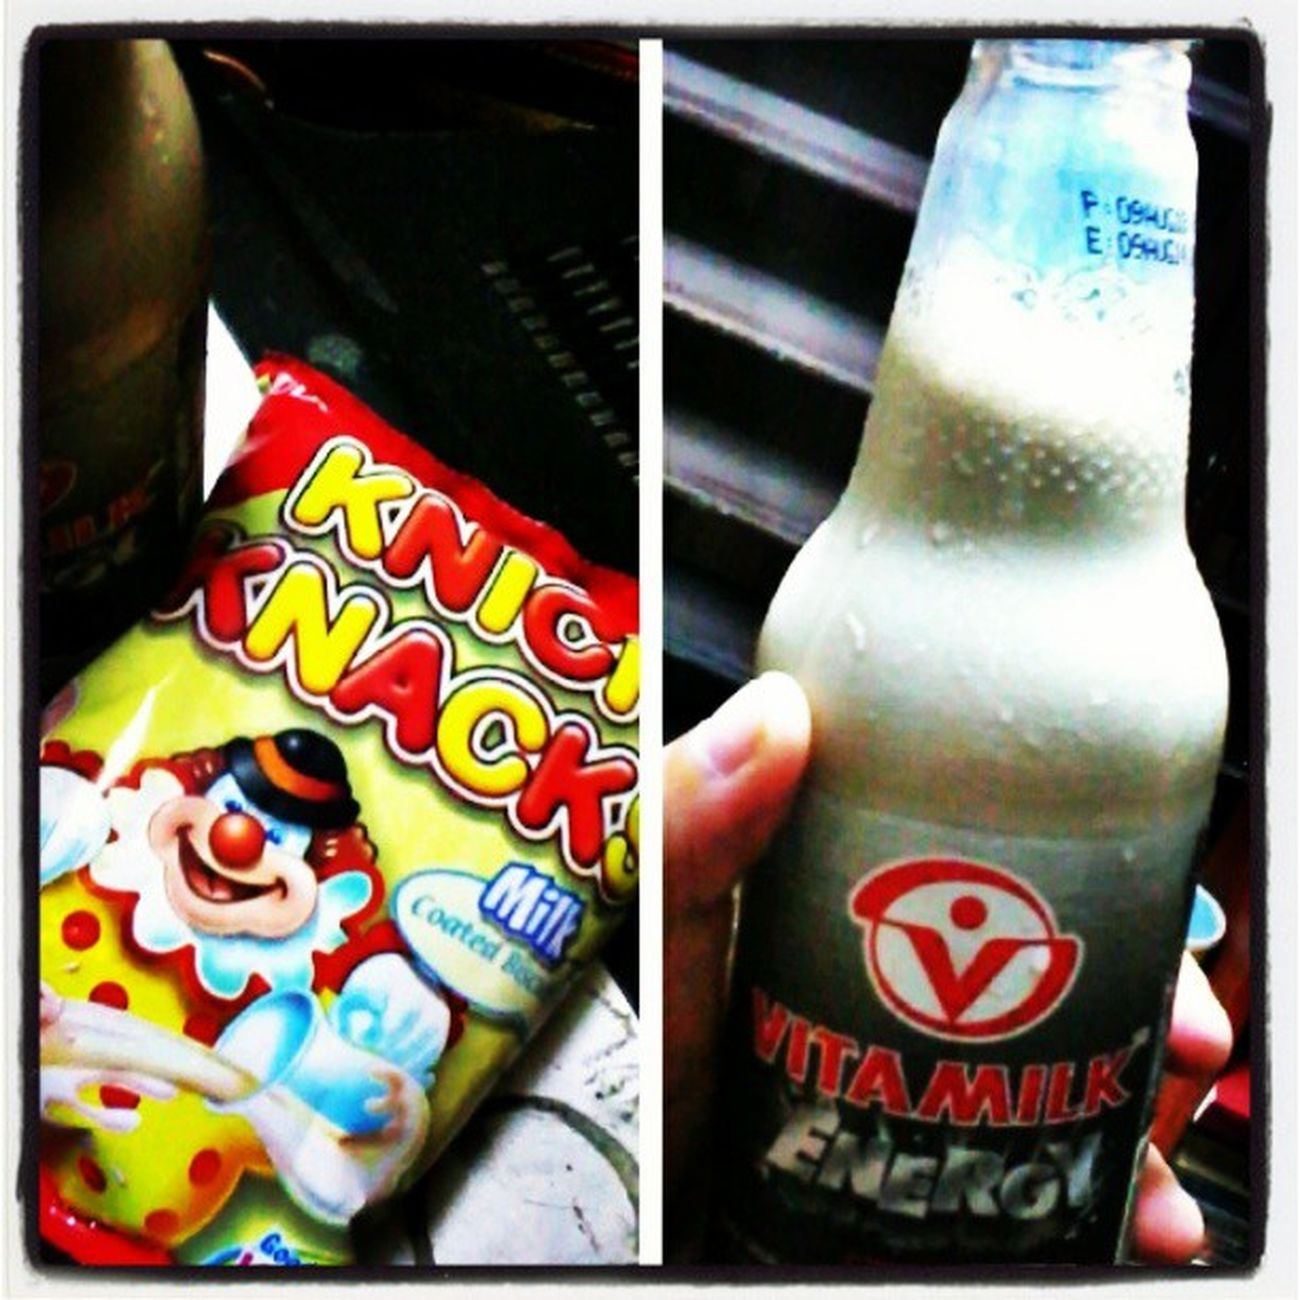 Knick knacks and Vita milk for snacks. Yummy Knicknacks Chocolate Vitamilk soyabeans soyamilk healthy snacktime energy nocaffeine newfave biscuits vitamins iron Love Life Passion igers igersasia Philippines Cebu pinoy instalike instalove potd followforfollow